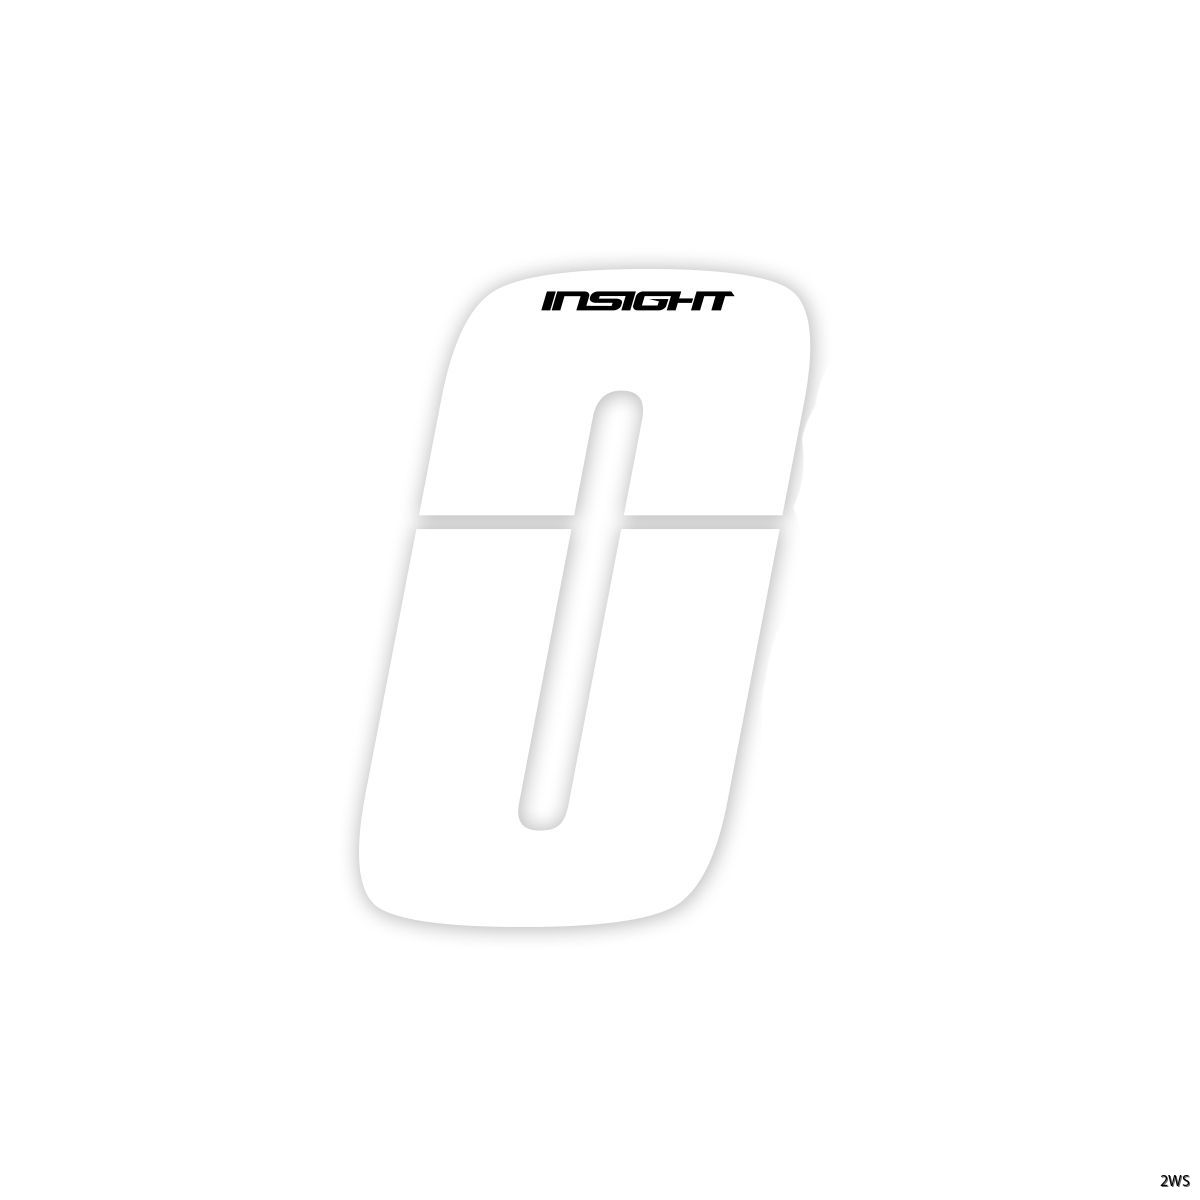 plate-numbers-insight-white-7-5cm_0